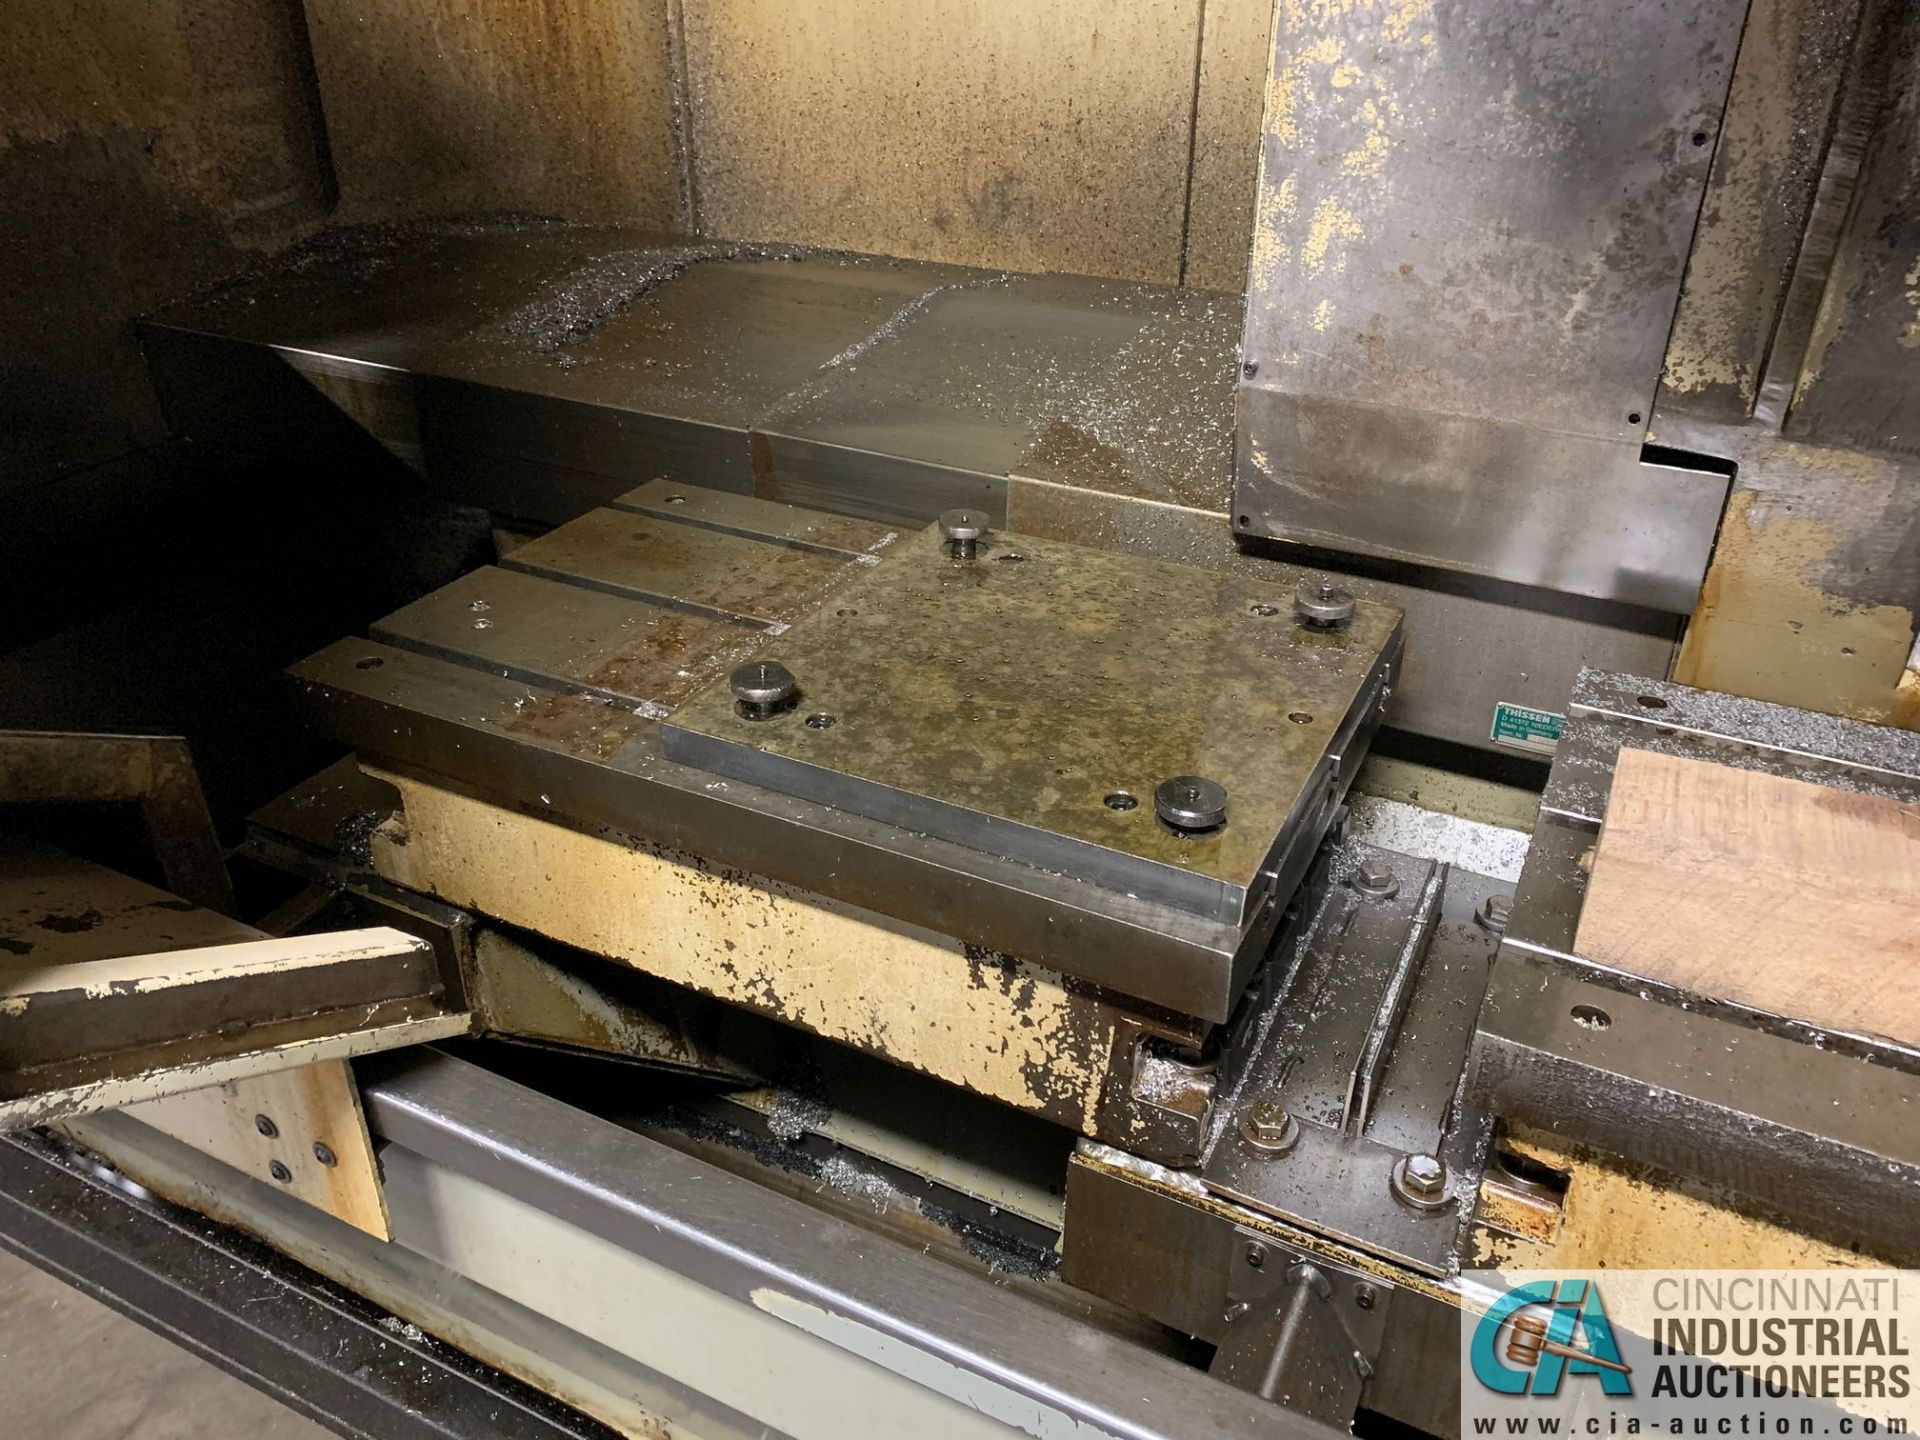 MONARCH UNISIGN TYPE UNIVERS 4 ZONALL 4 CNC VERTICAL MACHINING CENTER; S/N 99Z403, NO. 4293, - Image 4 of 13